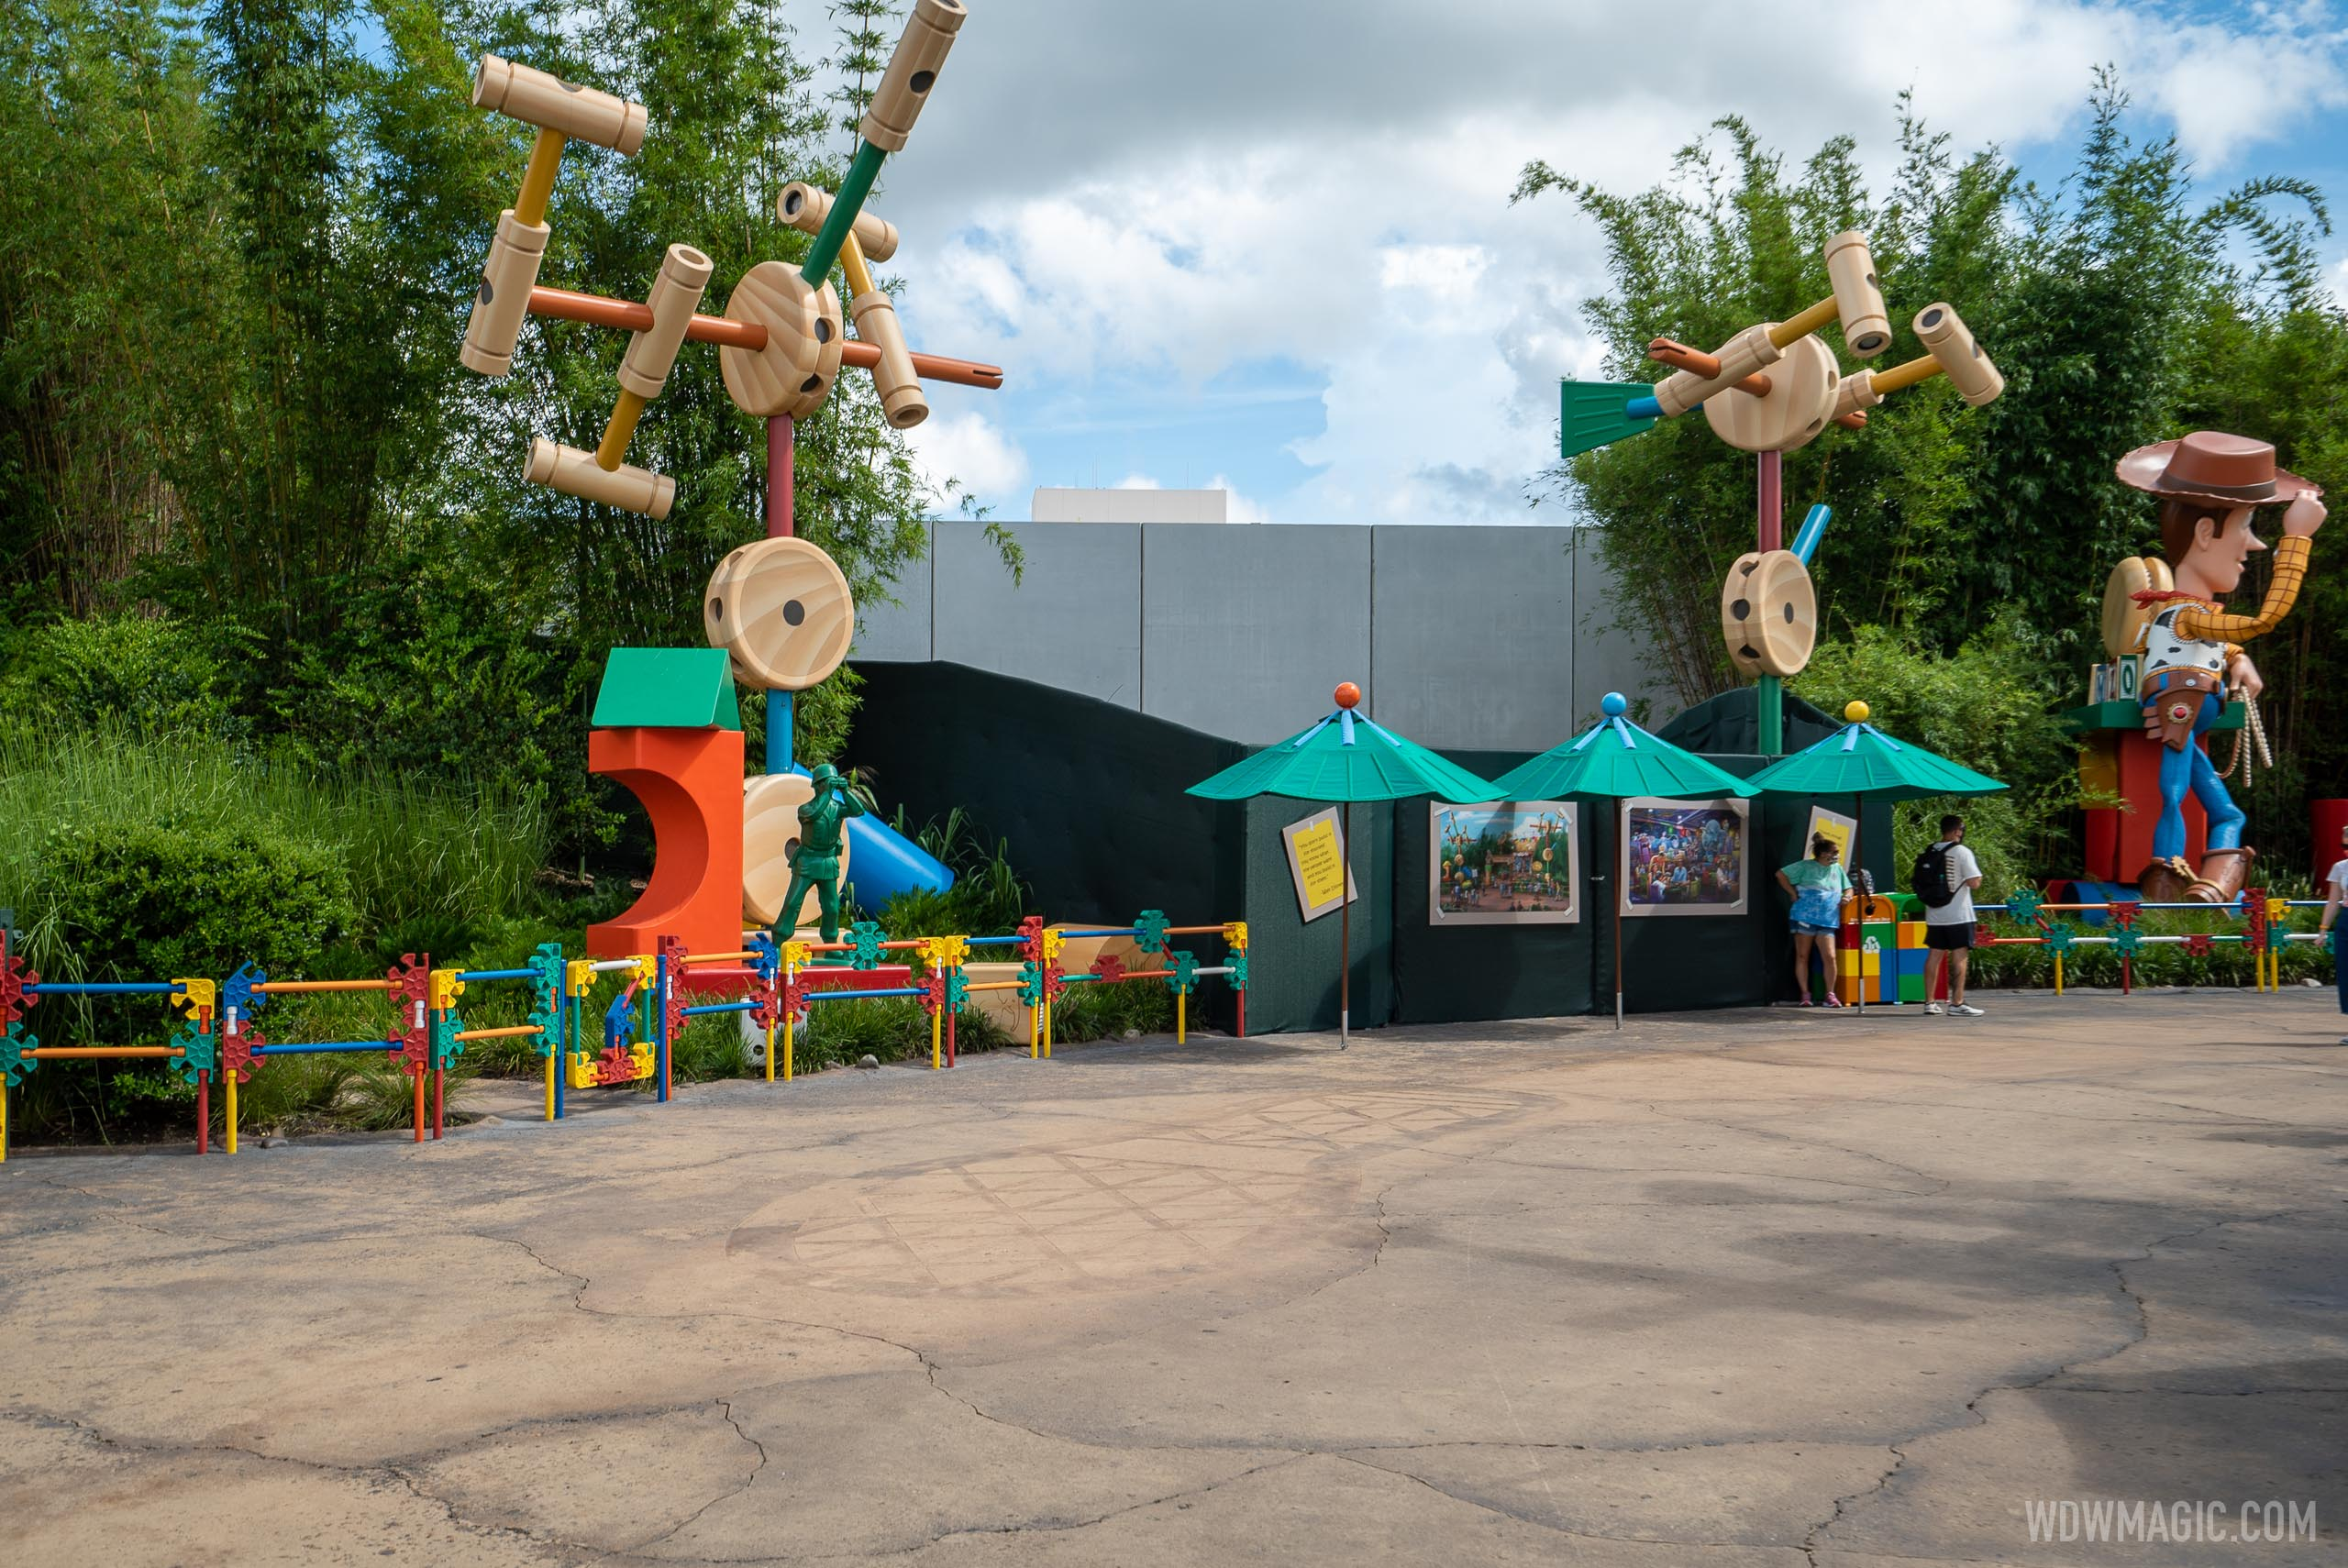 Roundup Rodeo BBQ construction - August 2020